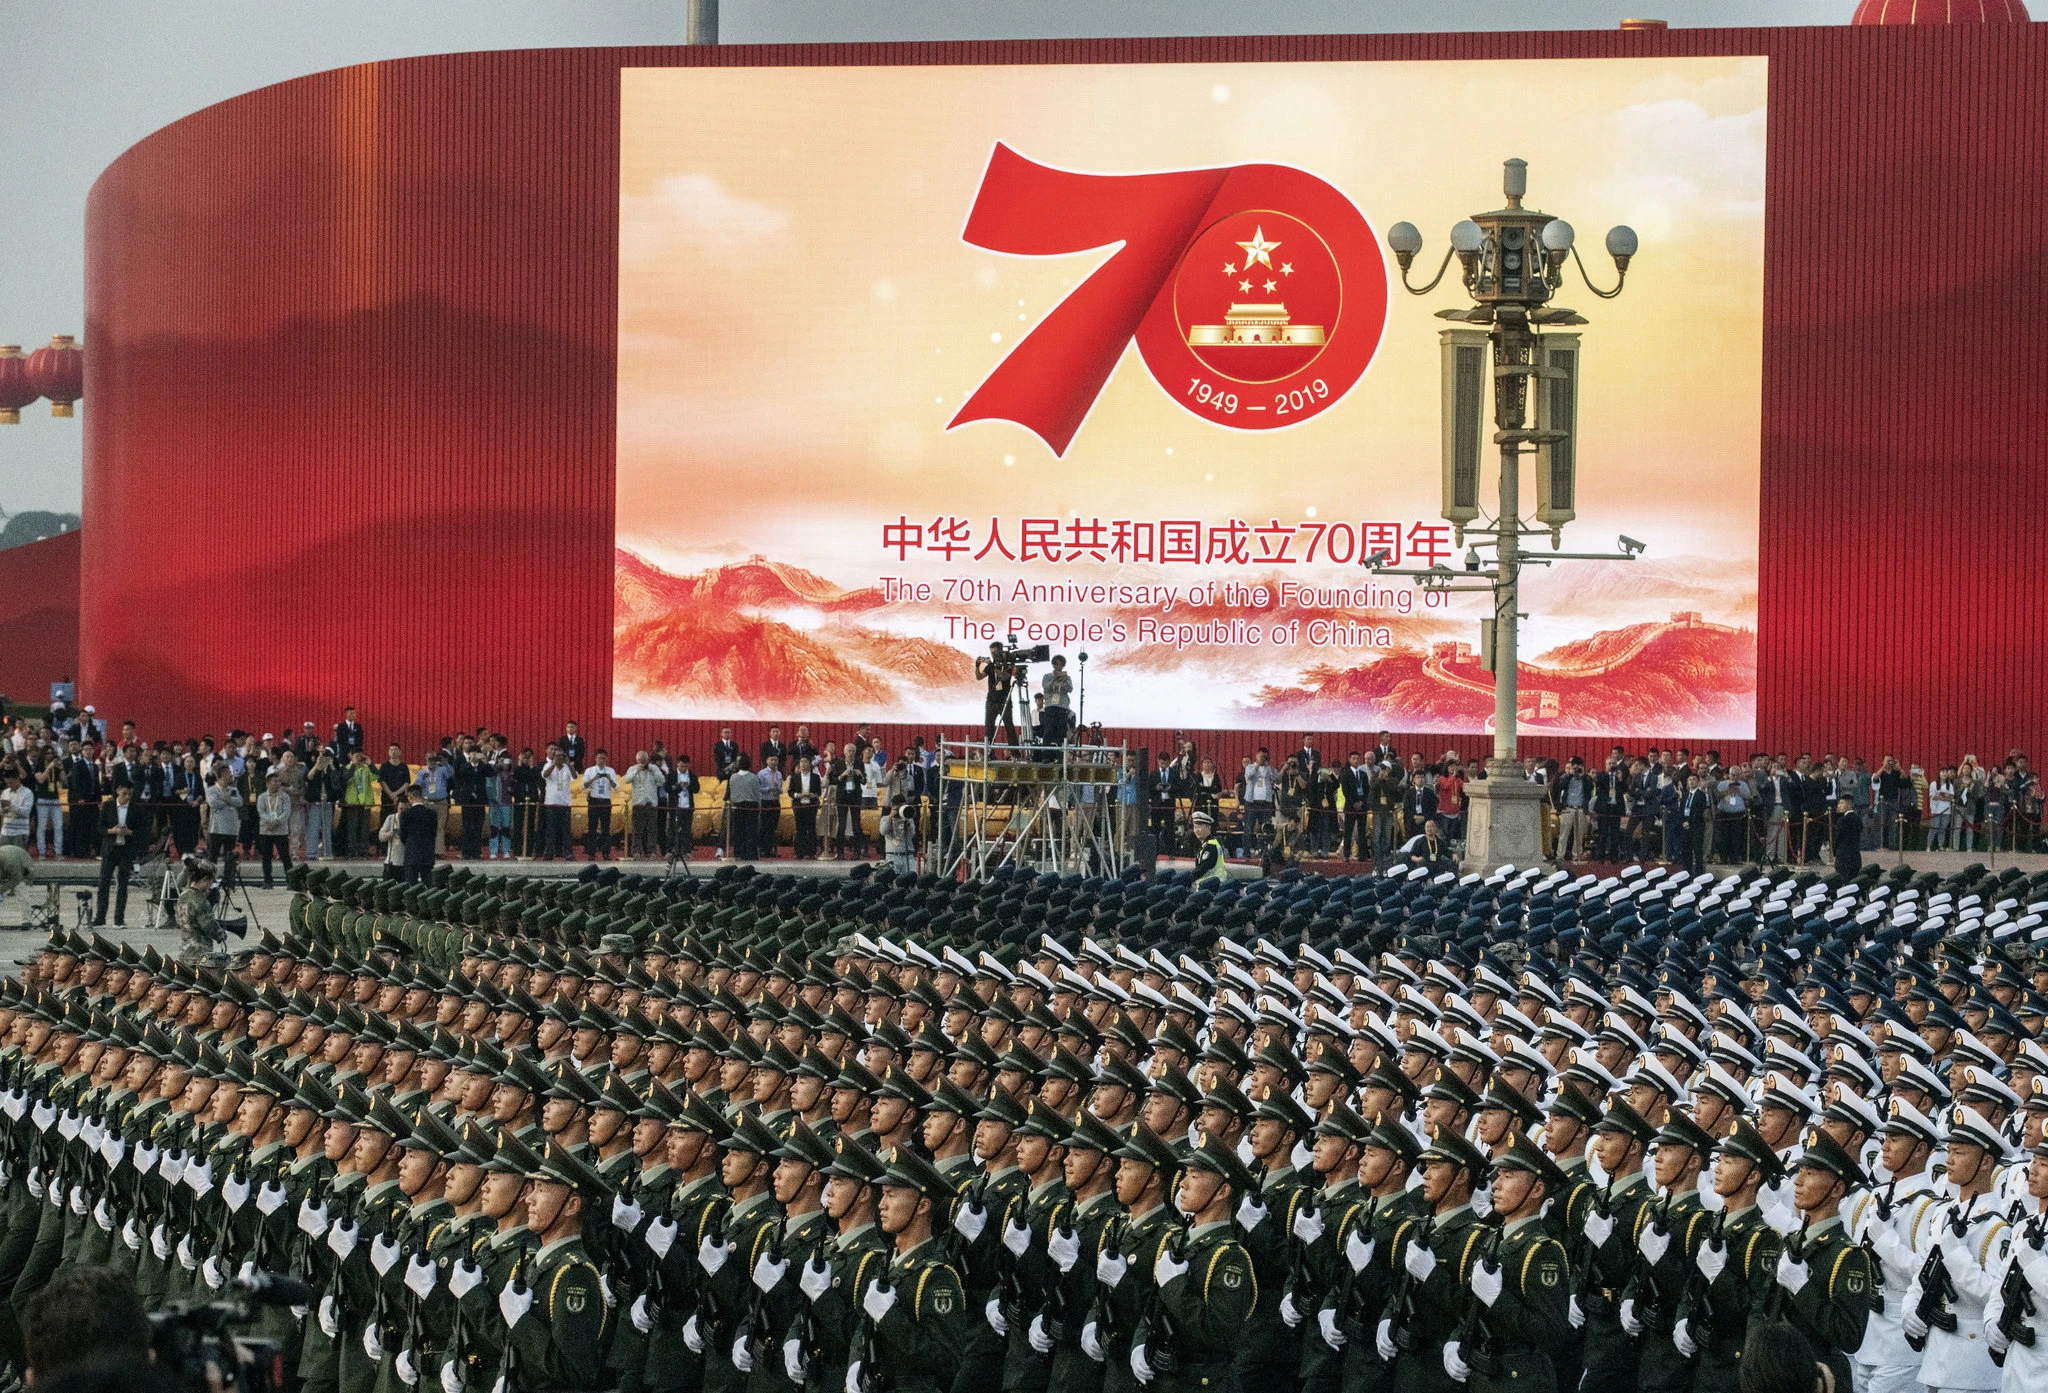 The Chinese military marches in a final rehearsal before the parade begins. Photo: Kevin Frayer /  Getty Images